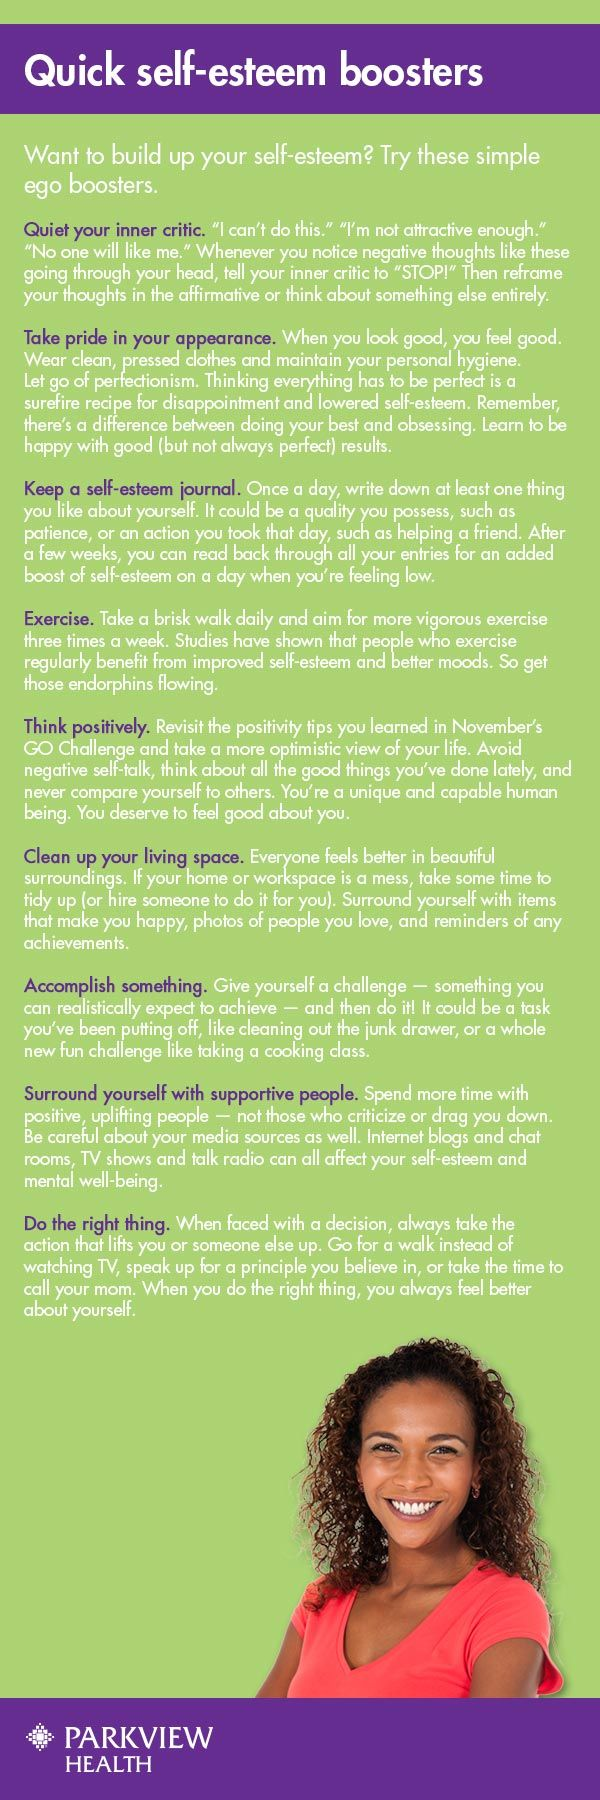 Tips for improving self-esteem and quick self-esteem boosters. | via @ParkviewHealth